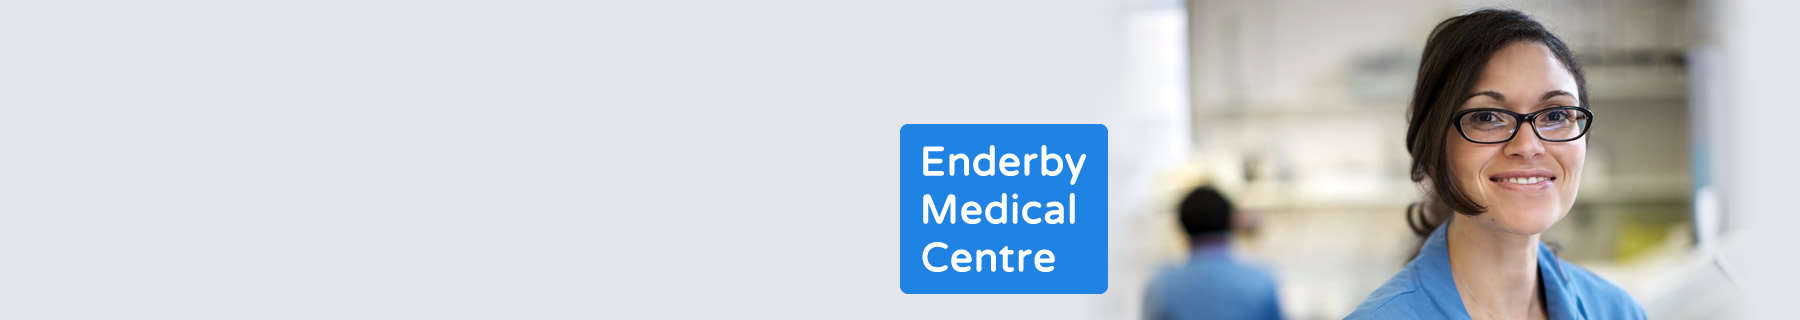 Surgery Connect has significantly improved Enderby Medical Centre's call handling capacity while providing business continuity via mobile phone backup